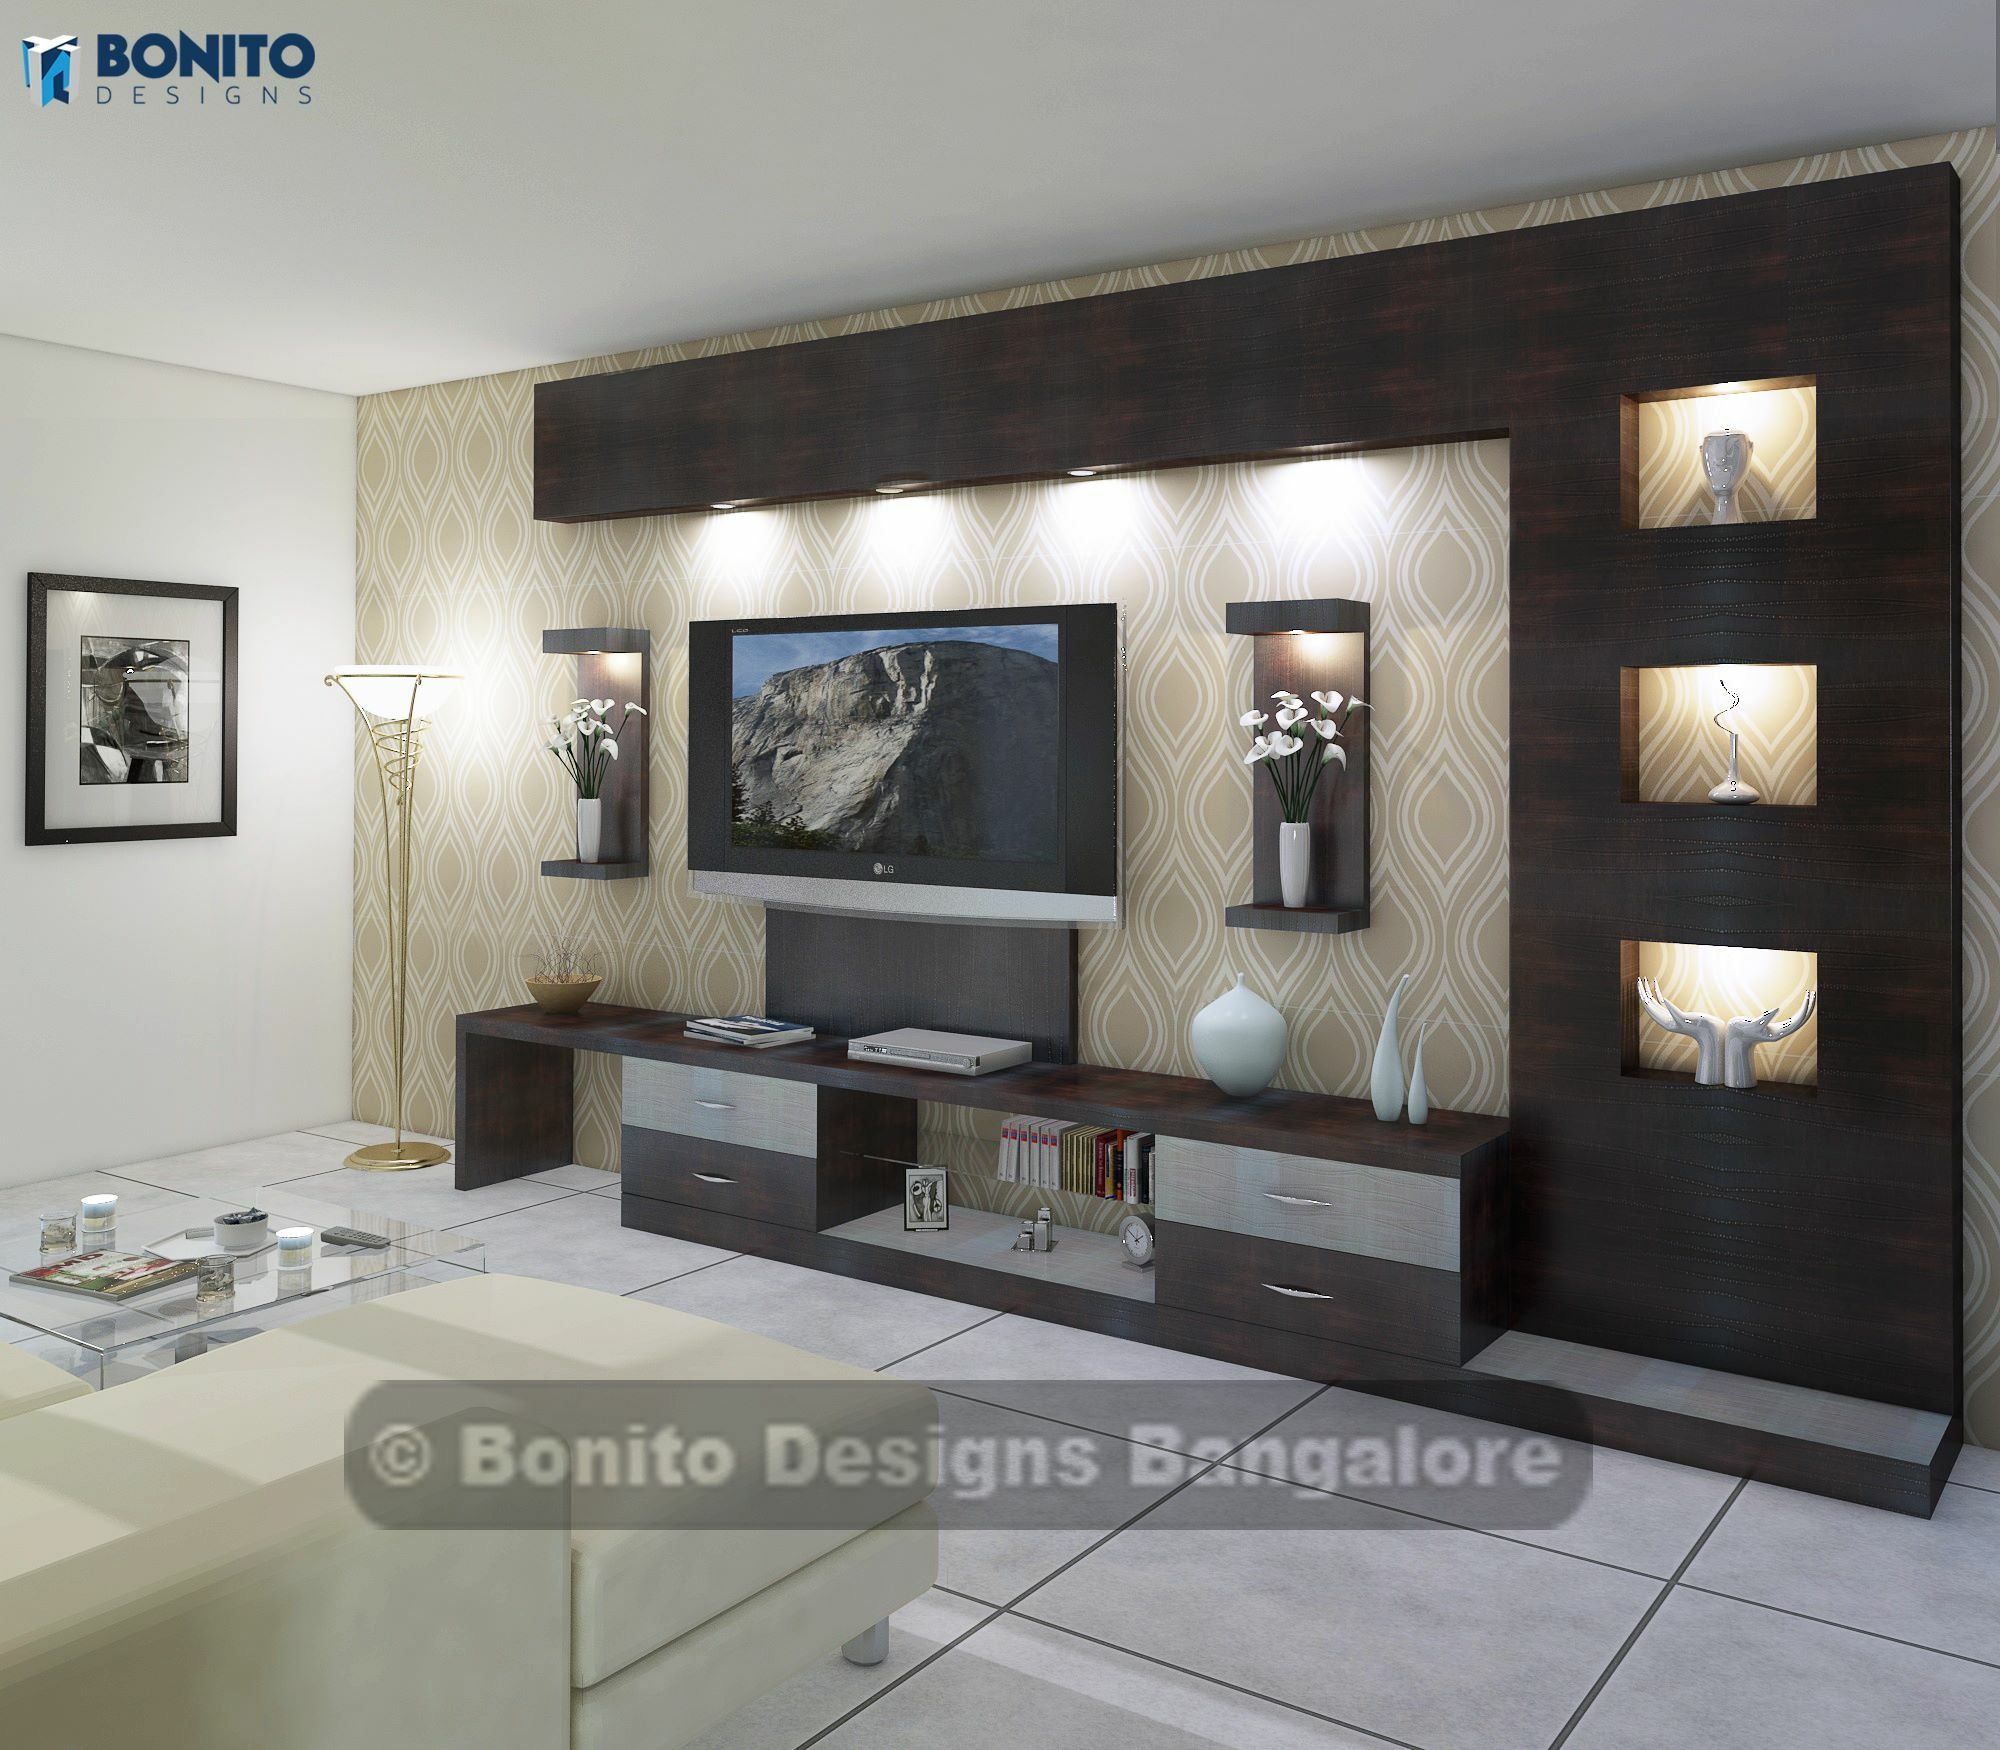 centro de entretenimiento centros bajos de. Black Bedroom Furniture Sets. Home Design Ideas